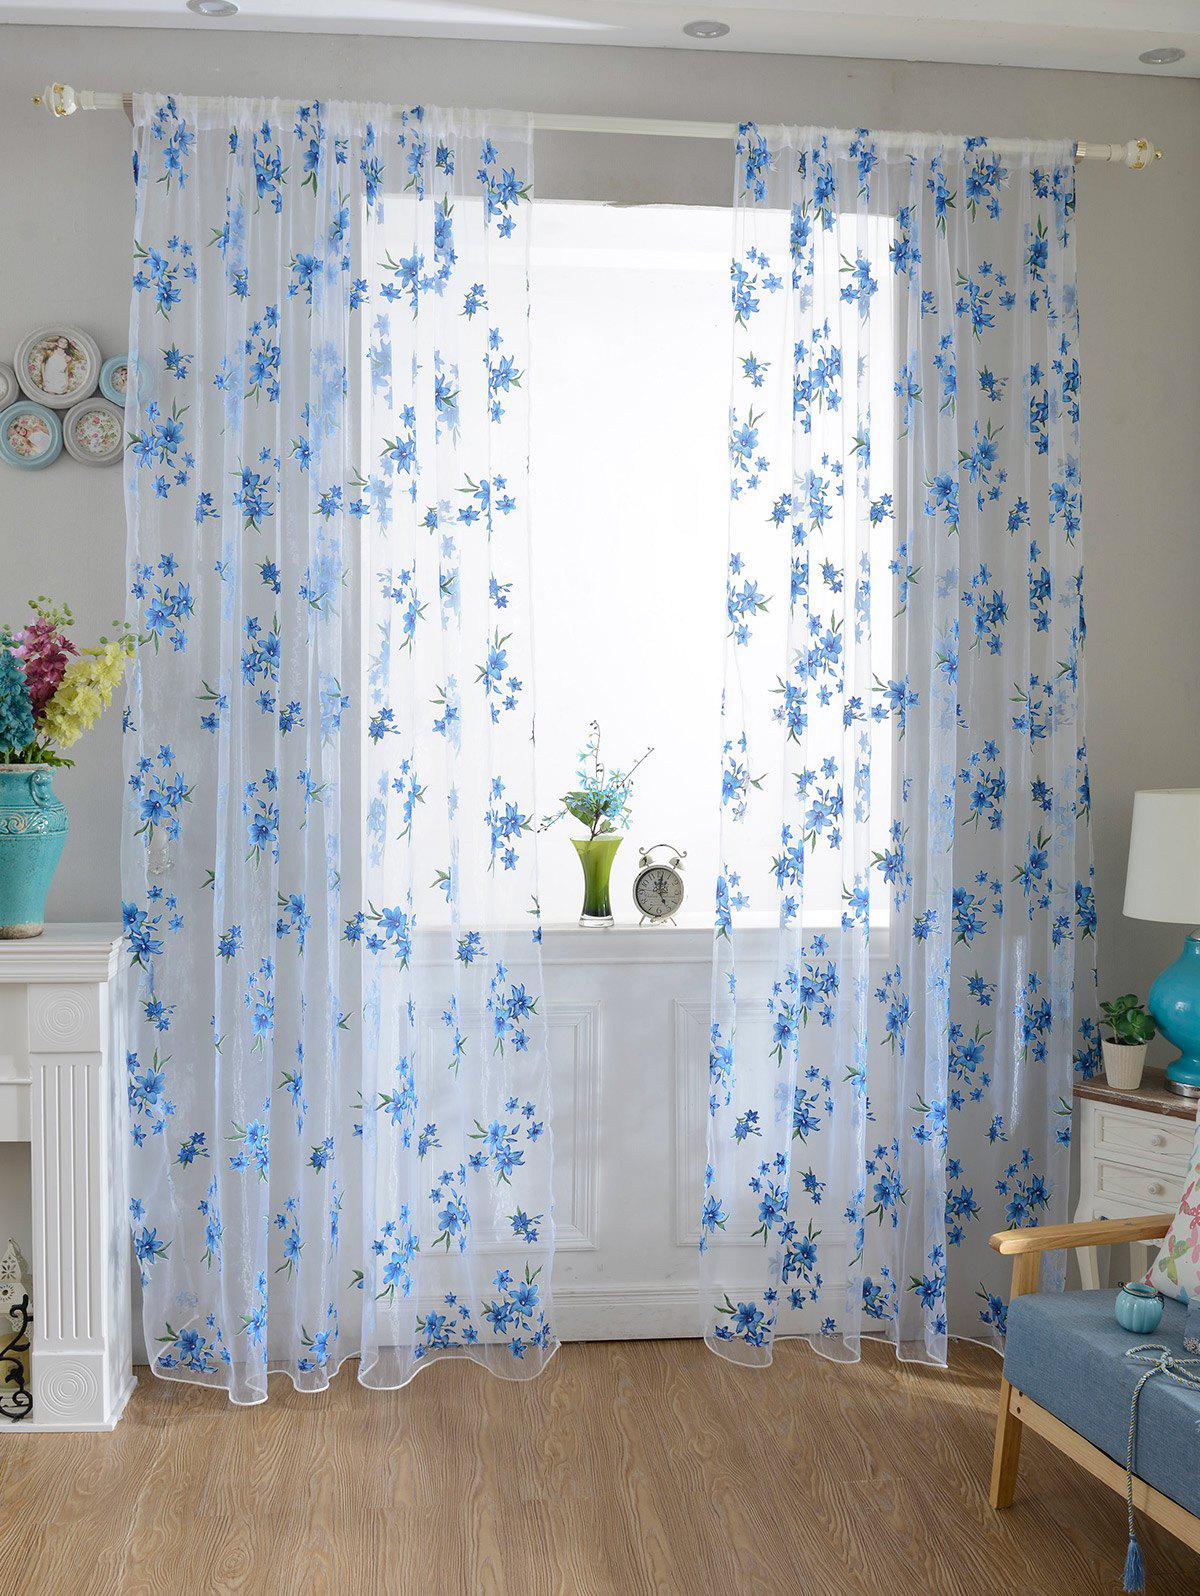 Flower Embroider Sheer Fabric Voile CurtainHOME<br><br>Size: 100*200CM; Color: SKY BLUE; Applicable Window Type: French Window; Function: Translucidus (Shading Rate 1%-40%); Installation Type: Ceiling Installation; Location: Window; Material: Voile Curtain; Opening and Closing Method: Left and Right Biparting Open; Pattern Type: Floral; Processing Accessories Cost: Excluded; Style: European and American Style; Type: Curtain; Use: Cafe,Home,Hotel,Office; Weight: 0.1800kg; Package Contents: 1 x Voile Curtain;